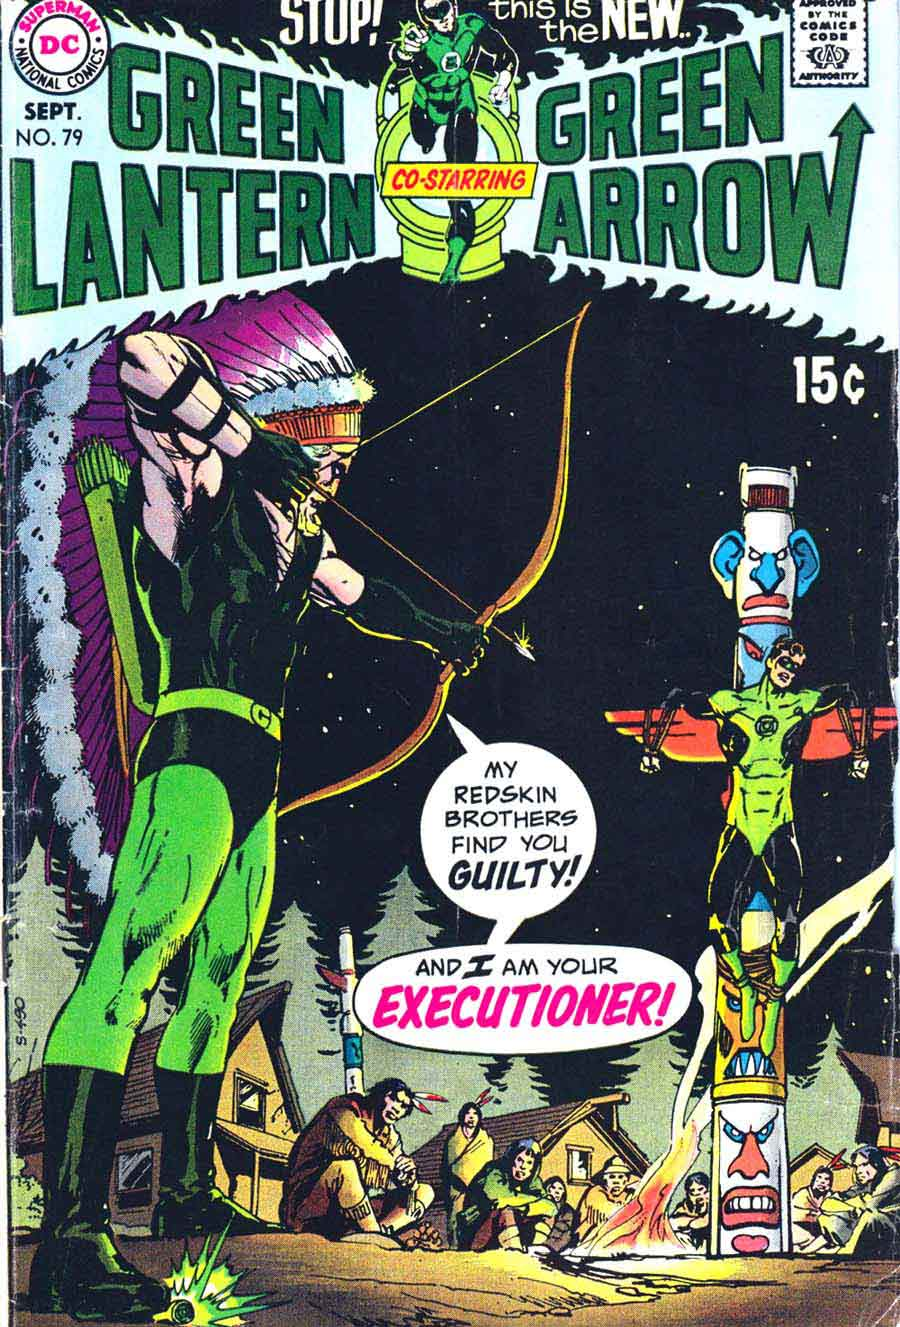 Green Lantern Green Arrow #79 dc comic book cover art by Neal Adams